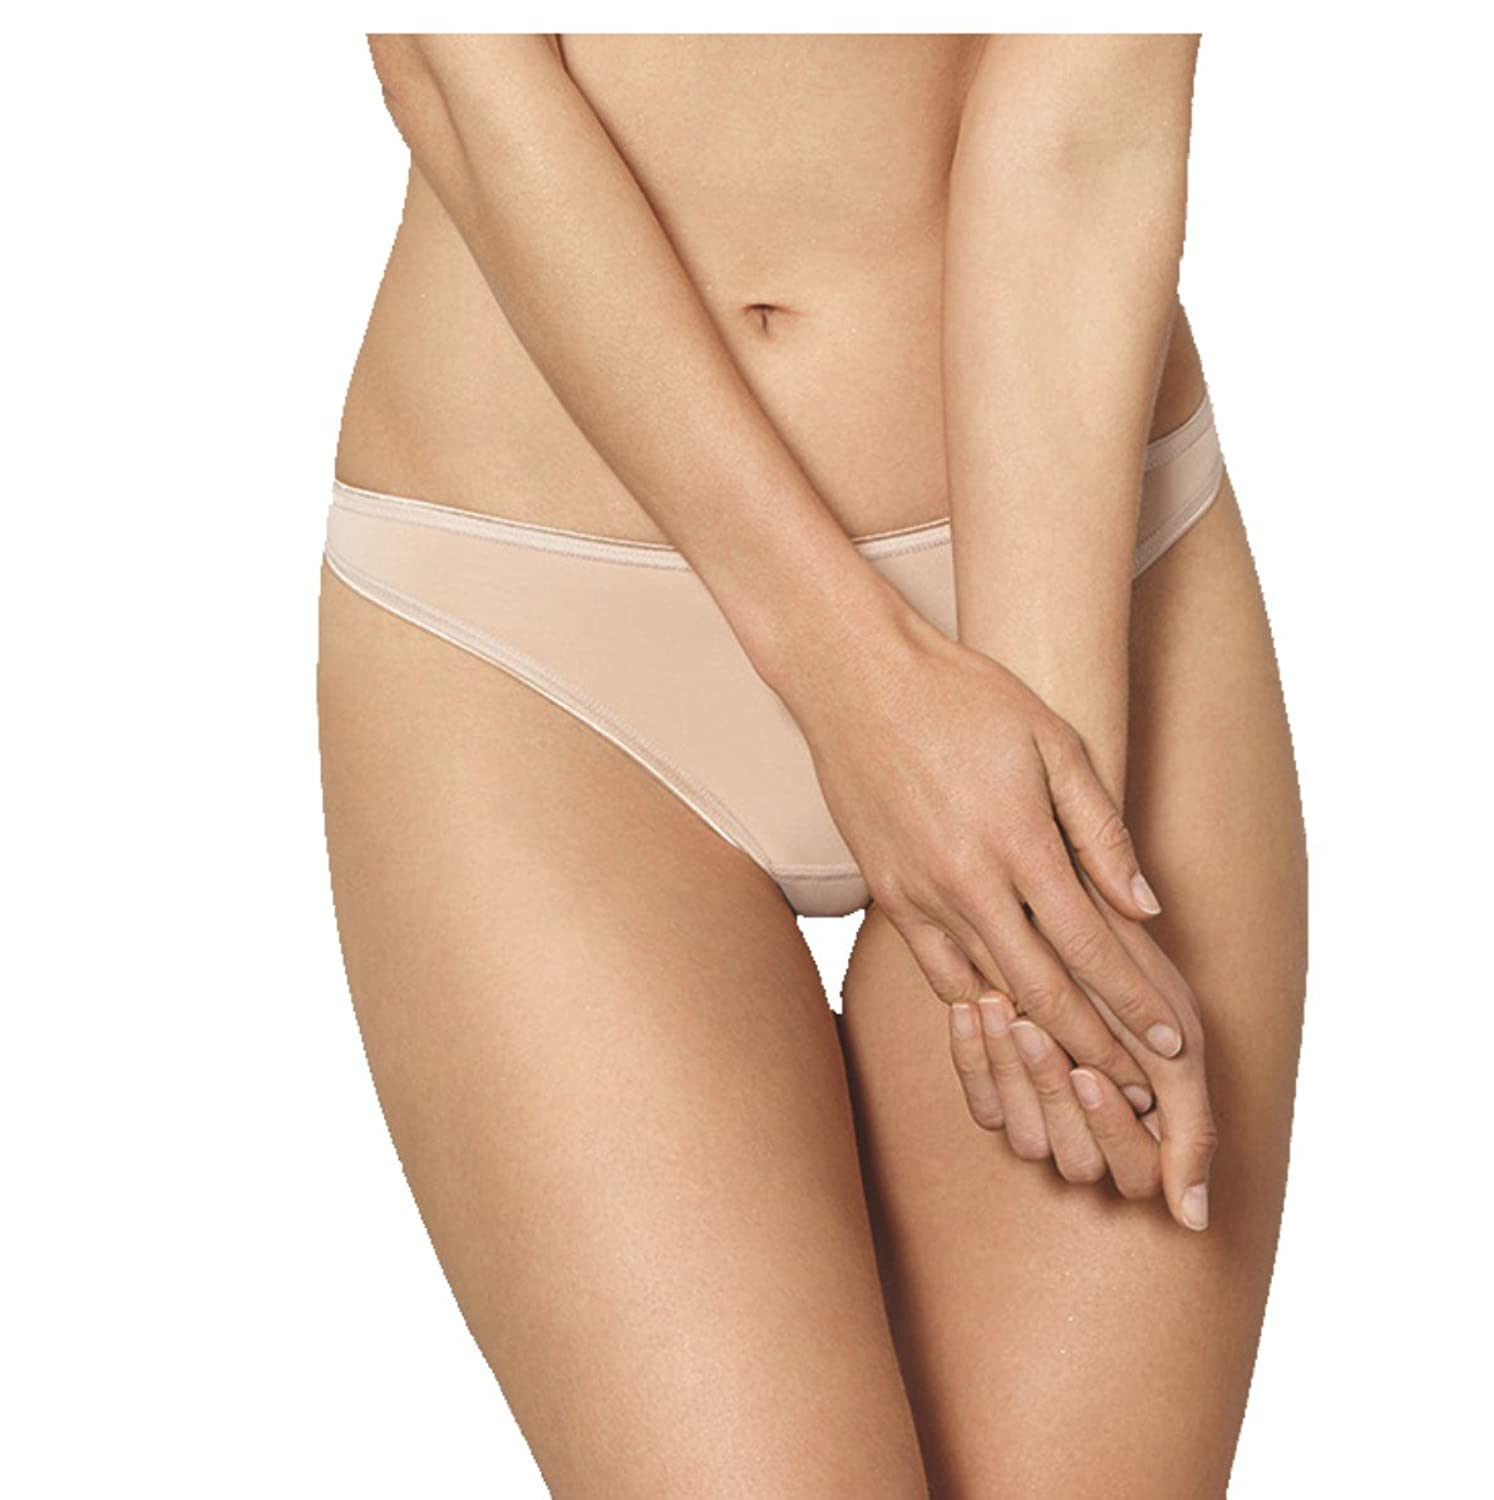 Speidel Damen Magic Hip Hüftstring 5er Pack 9410